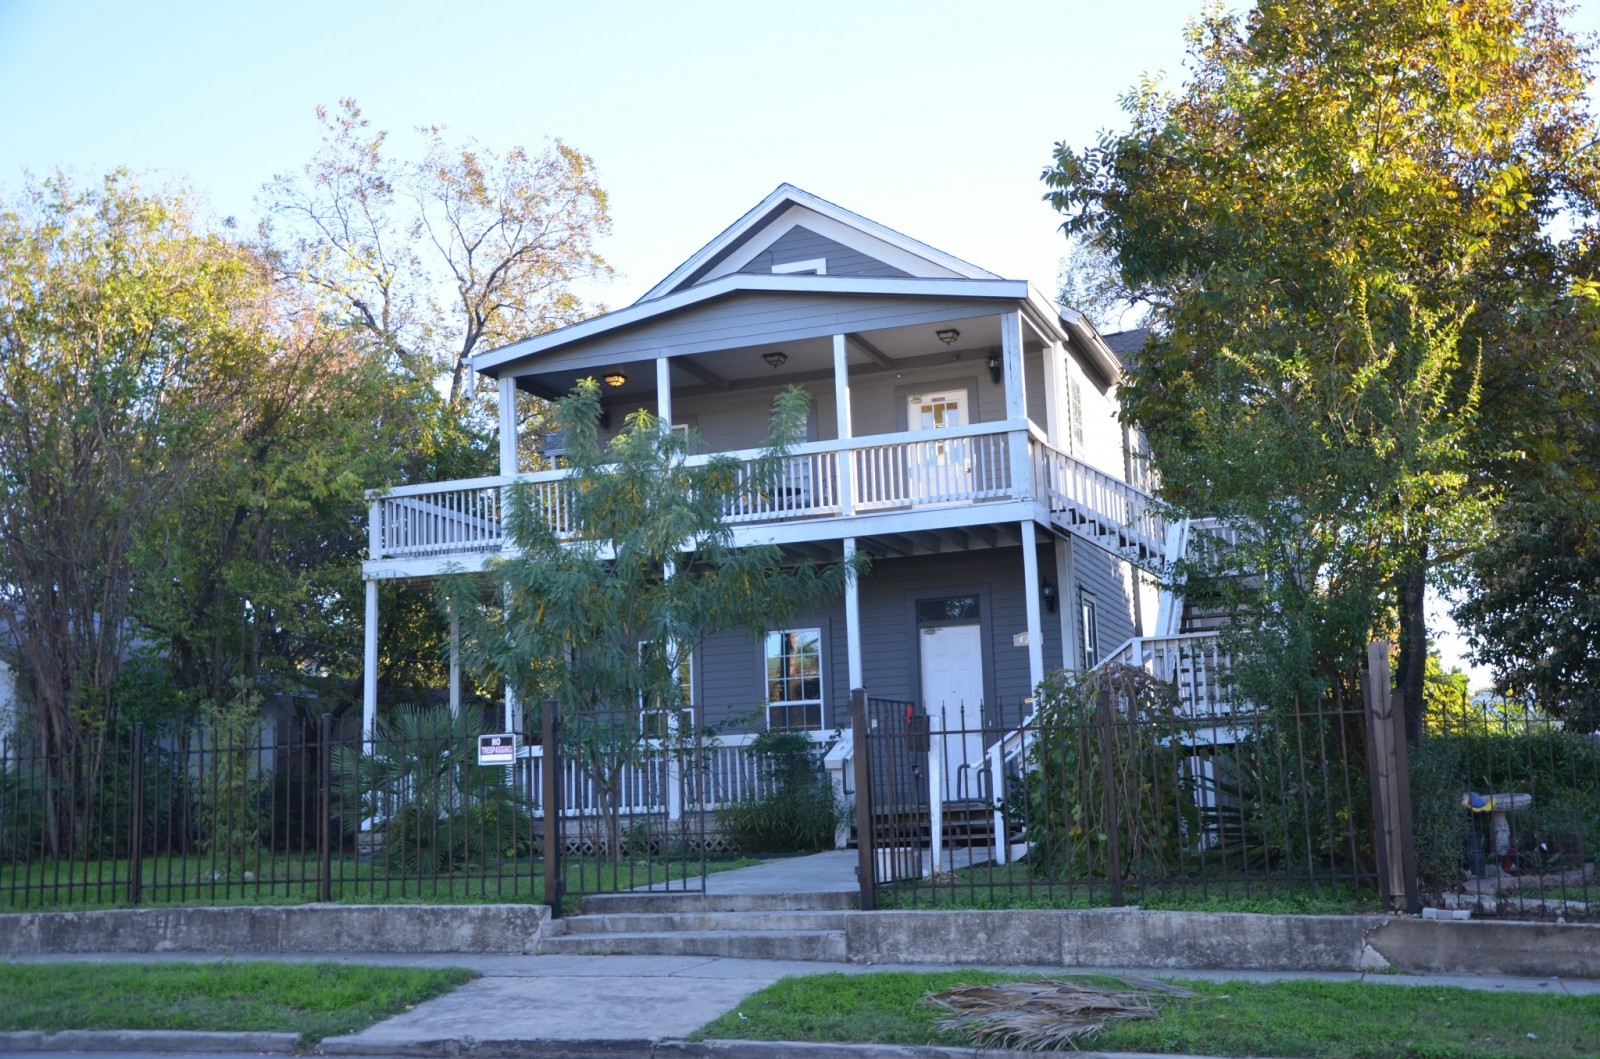 San Antonio AIDS Foundation's Carson House